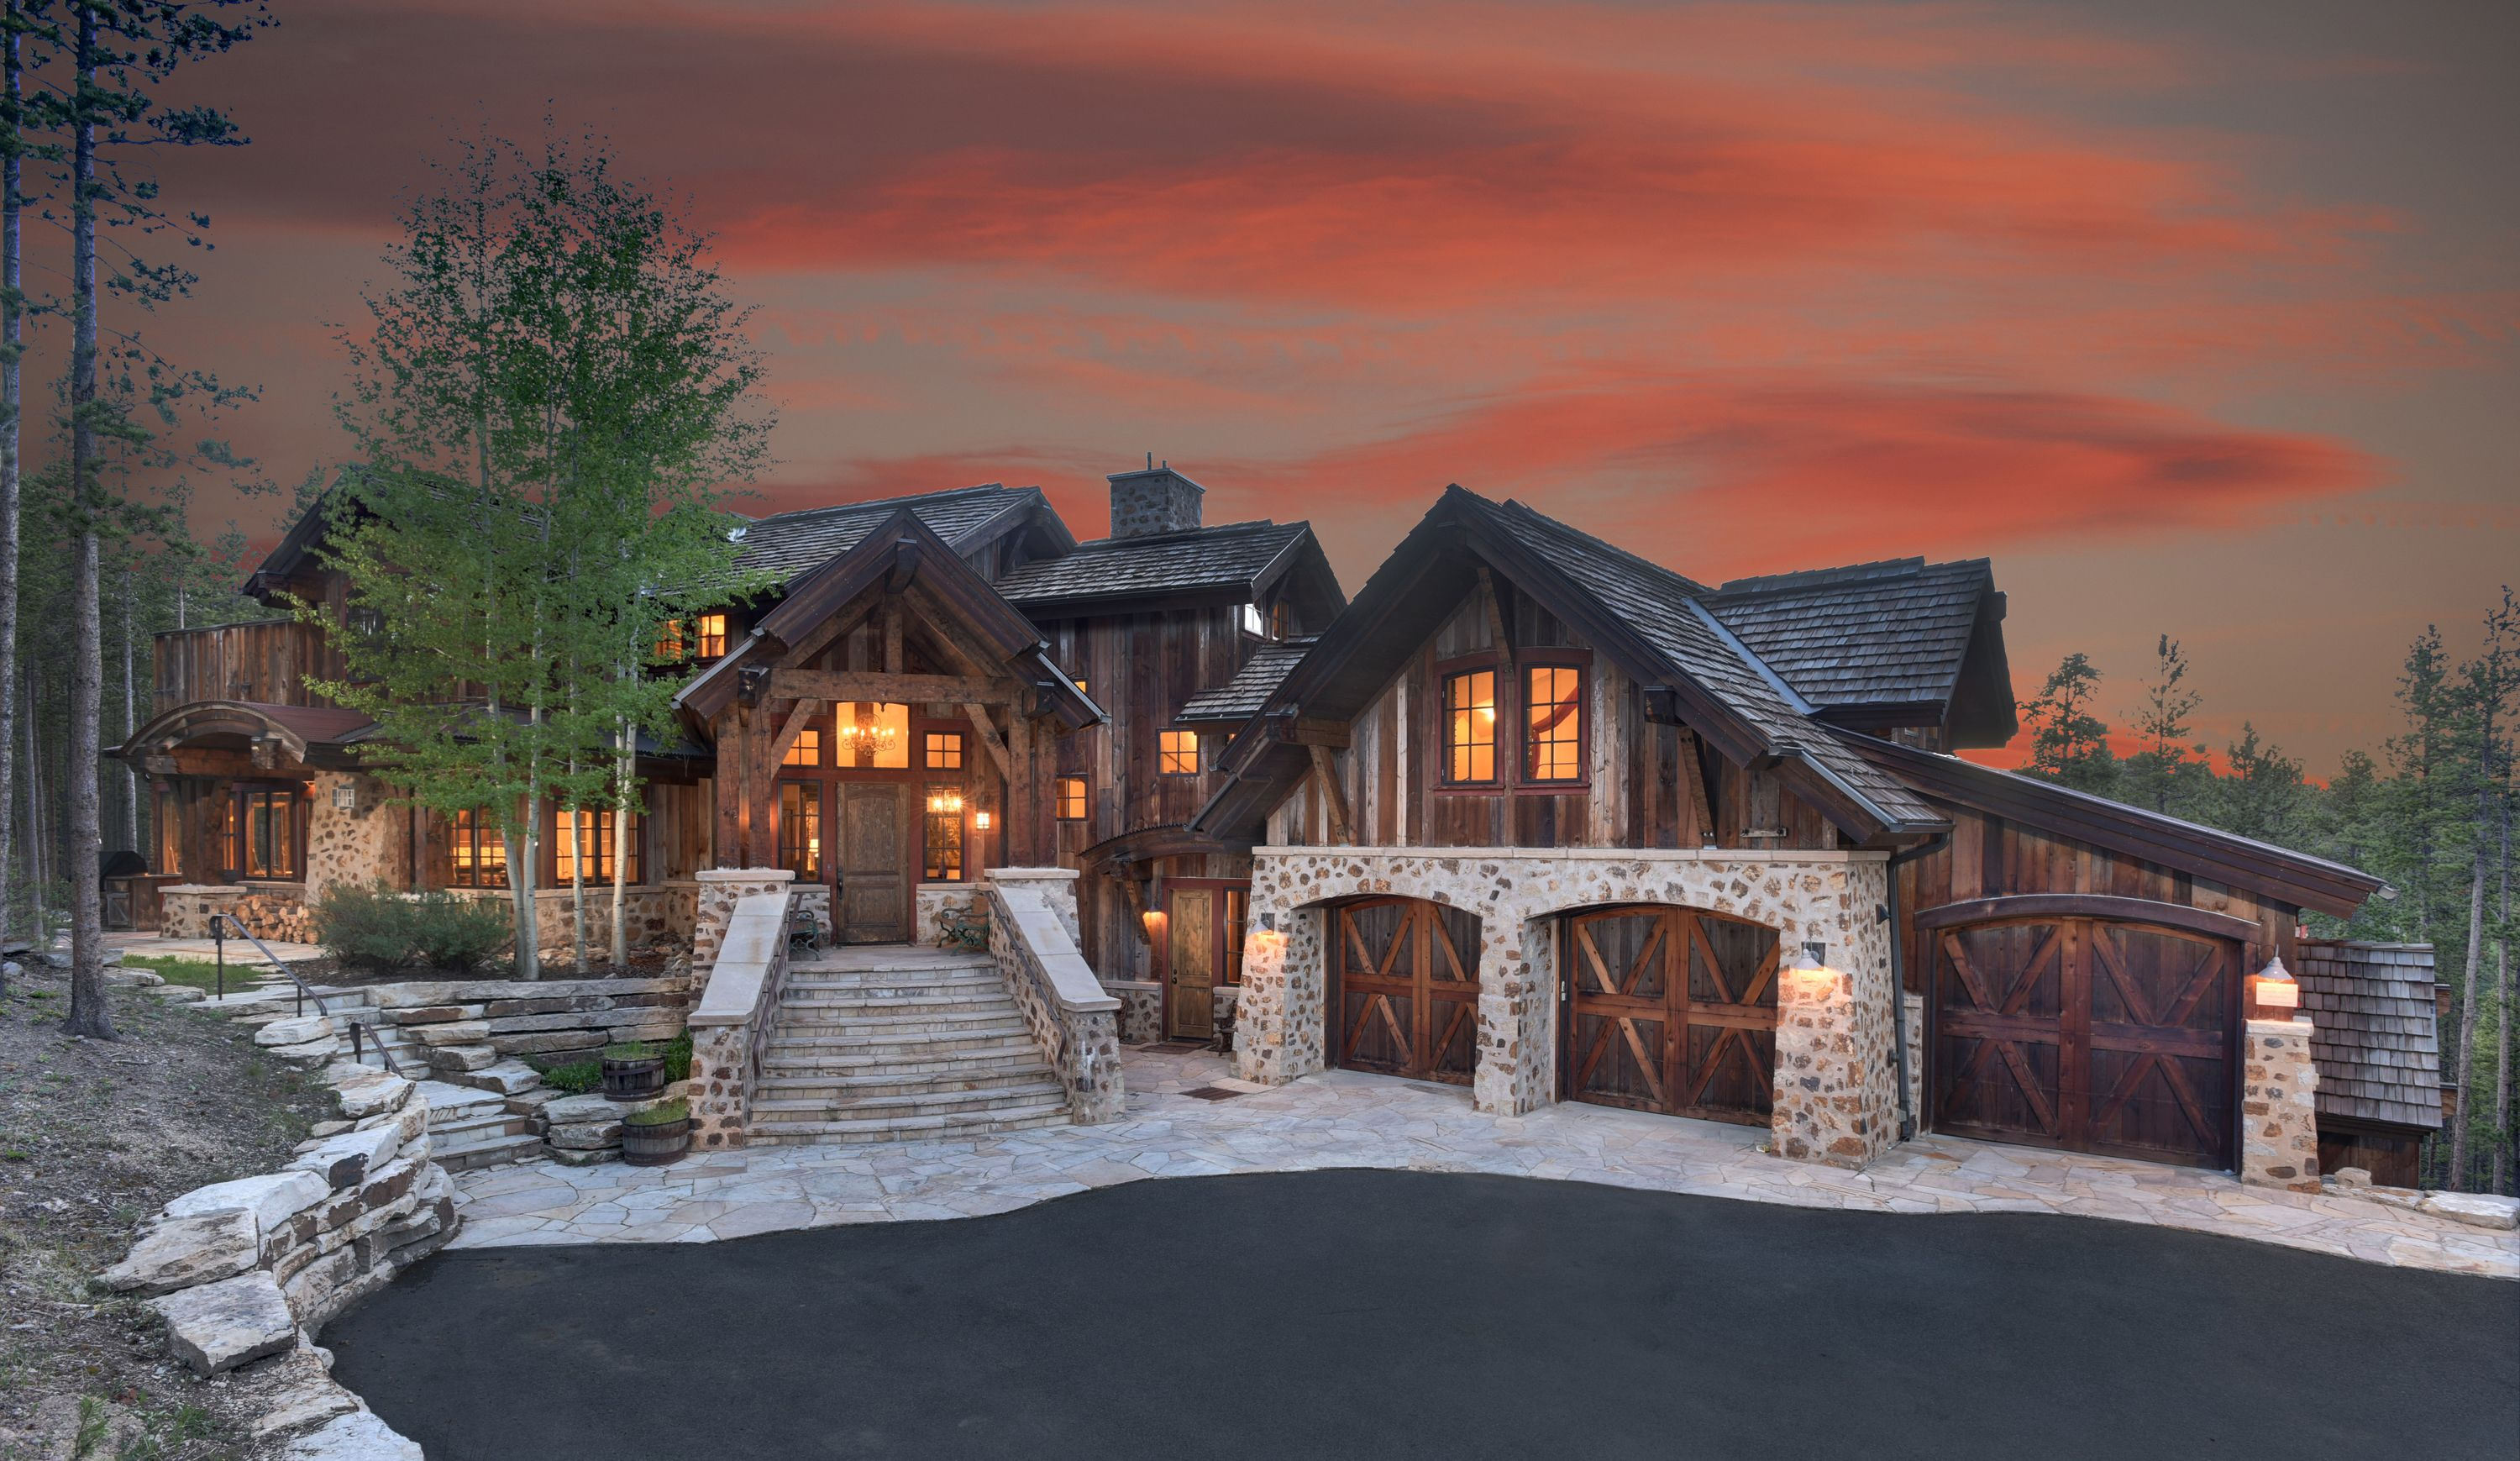 texas floor dead cabins thirties co house home designs chalet ingenious plans ideas hendersonville loft homes baby mountain sale trend lodge nursery s drop with cabin style craftsman design decoration for colorado